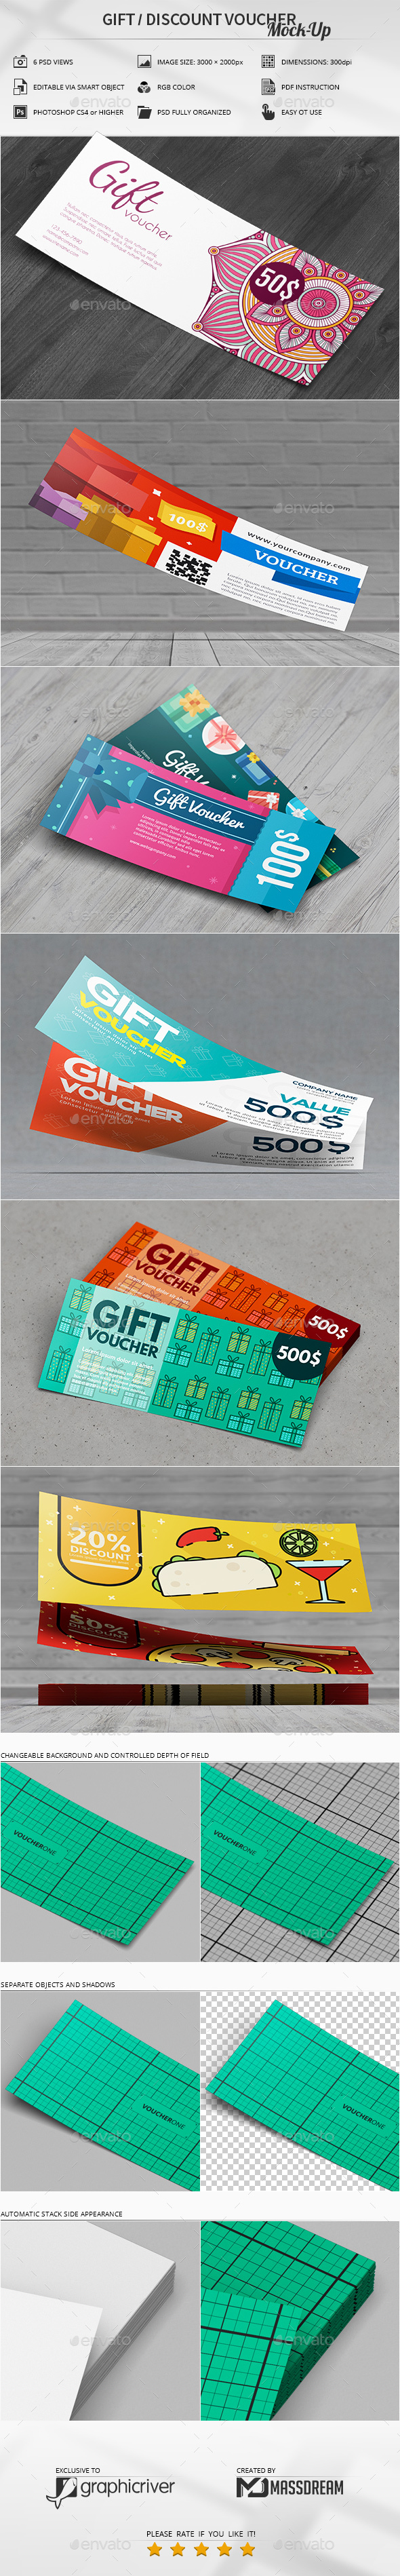 Gift / Discount Voucher Mock-Up - Product Mock-Ups Graphics